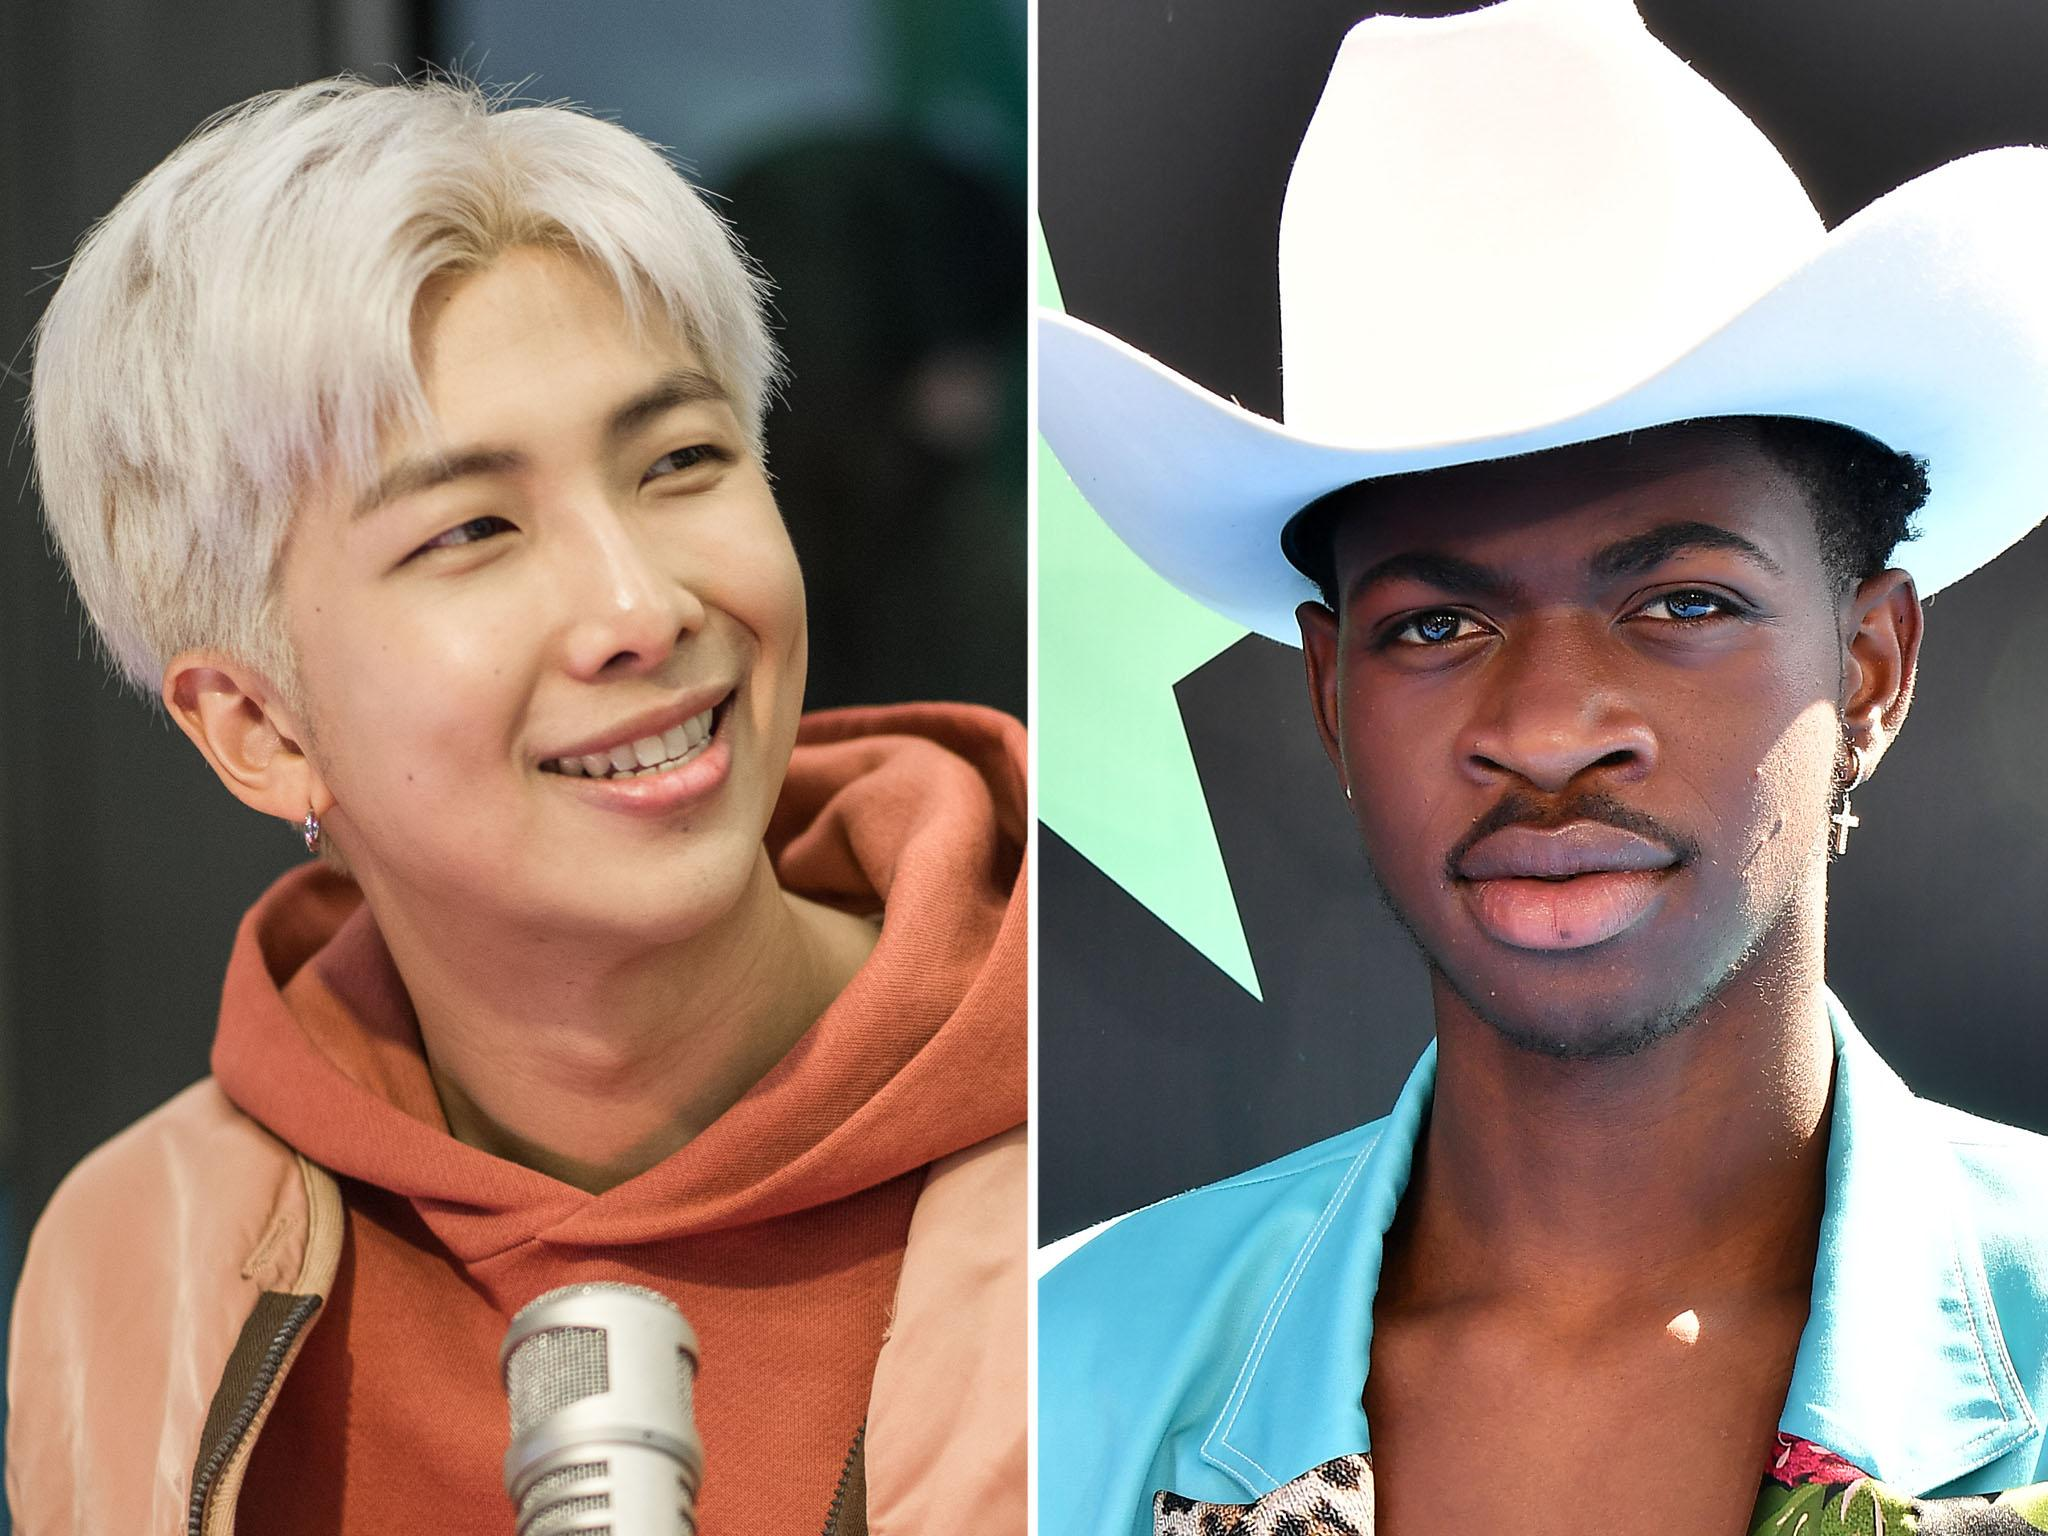 Old Town Road' rapper Lil Nas X collaborates with BTS star